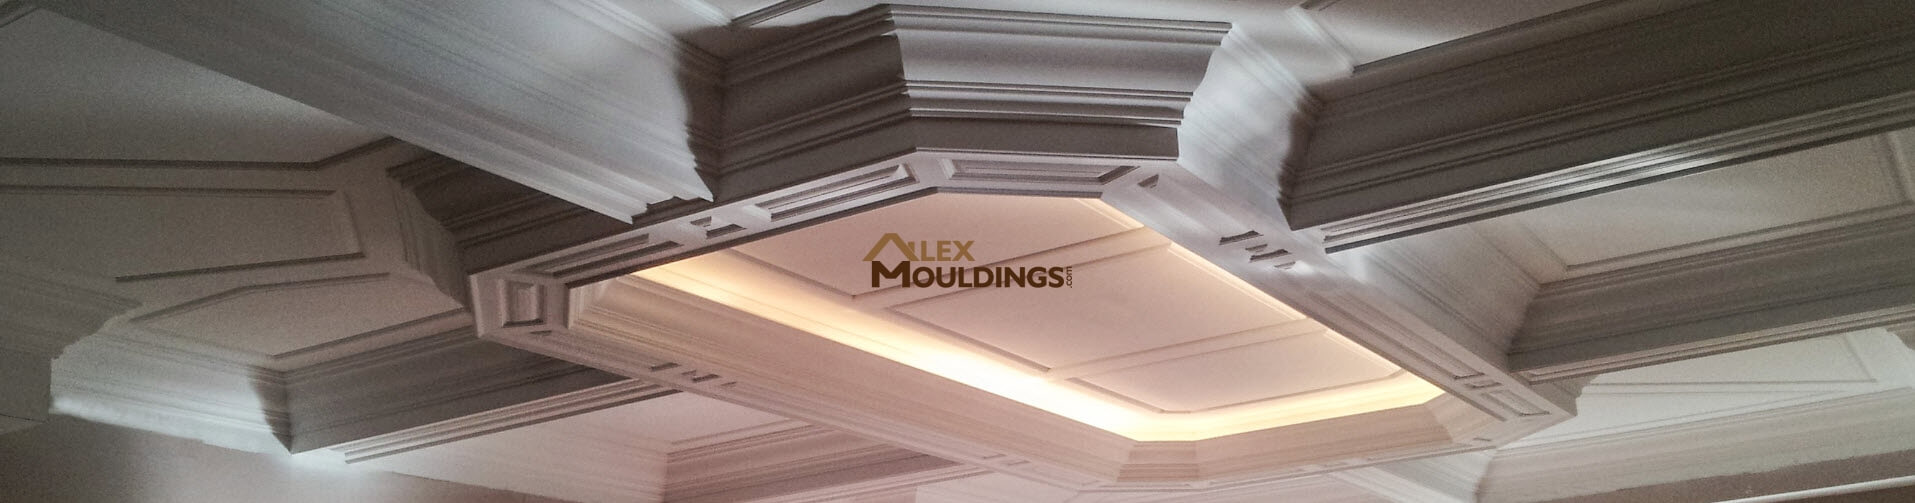 crown moulding on top of kitchen cabinets